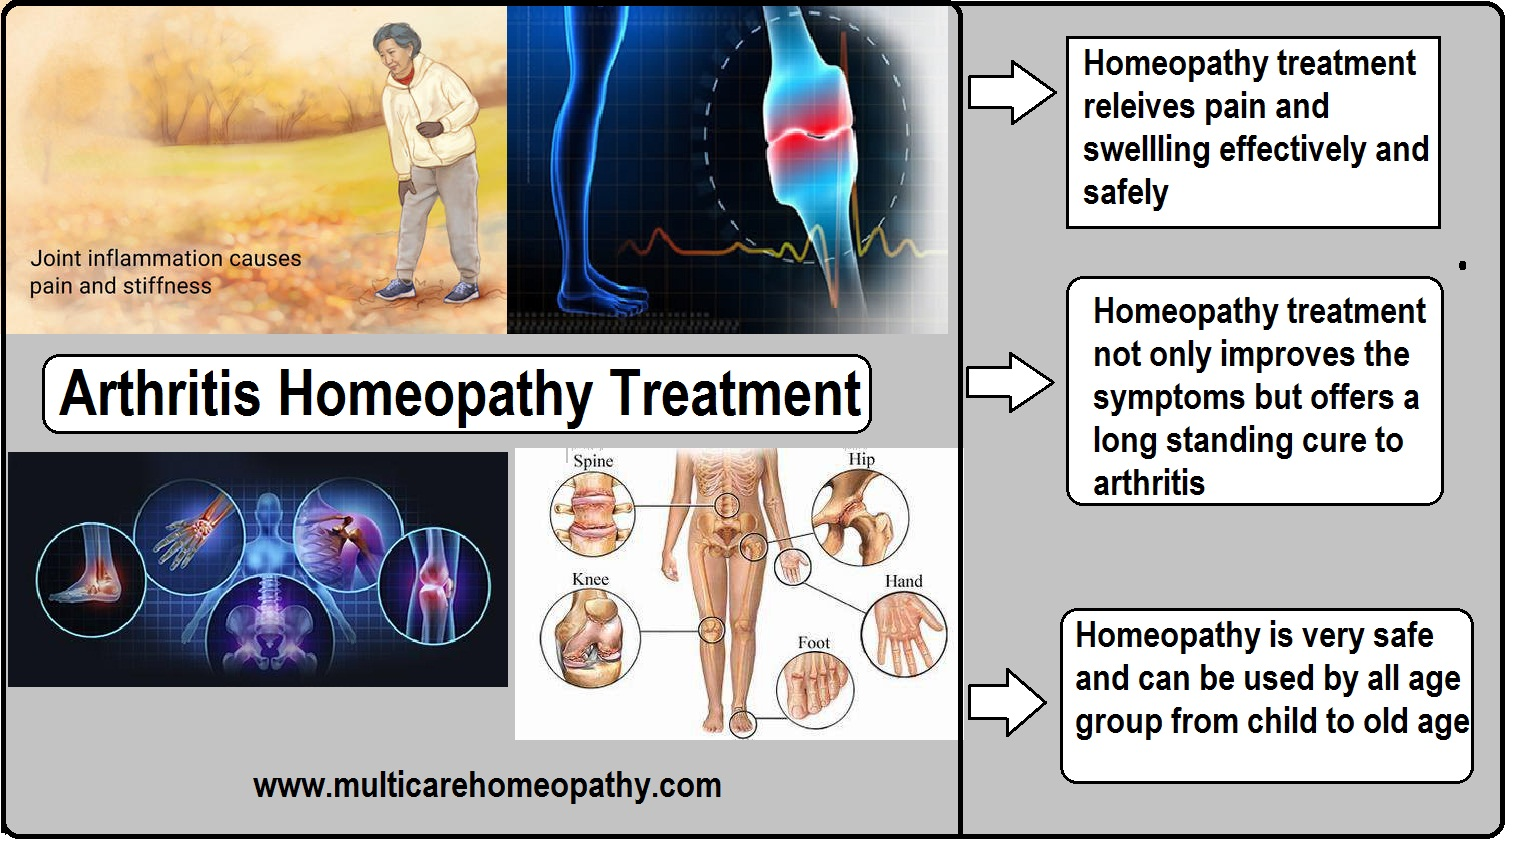 homeopathy traetment in arthritis